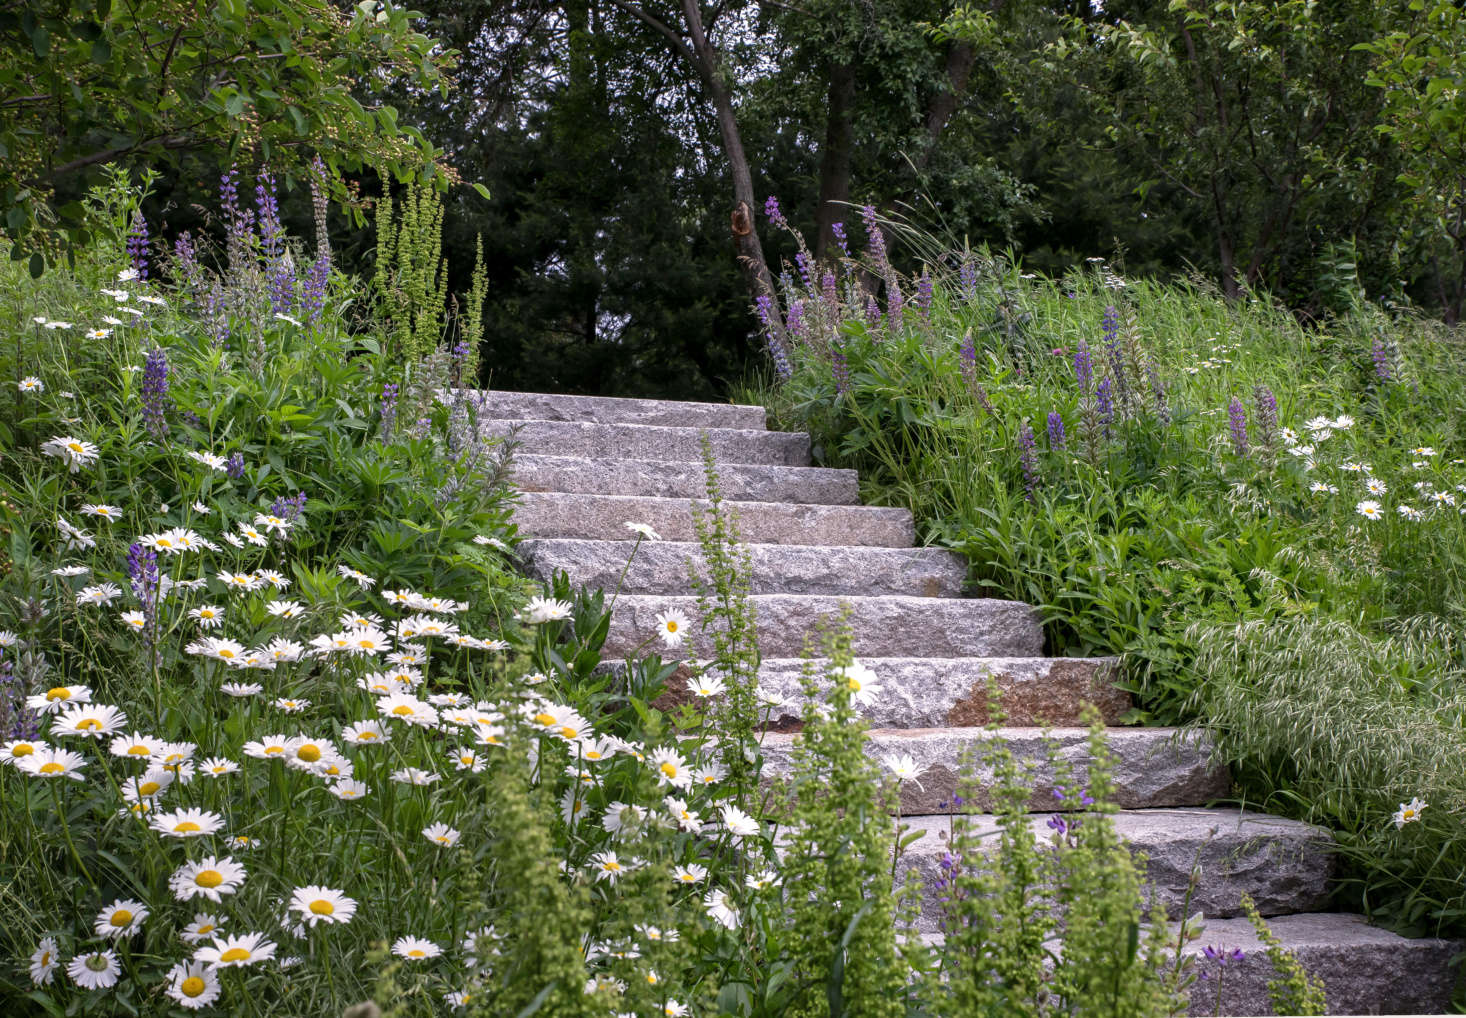 The hillside was seeded with a meadow mix; in early summer lupine and daisy offset the granite steps. The stairs are made from locally sourced, salvaged granite for an authentic look.